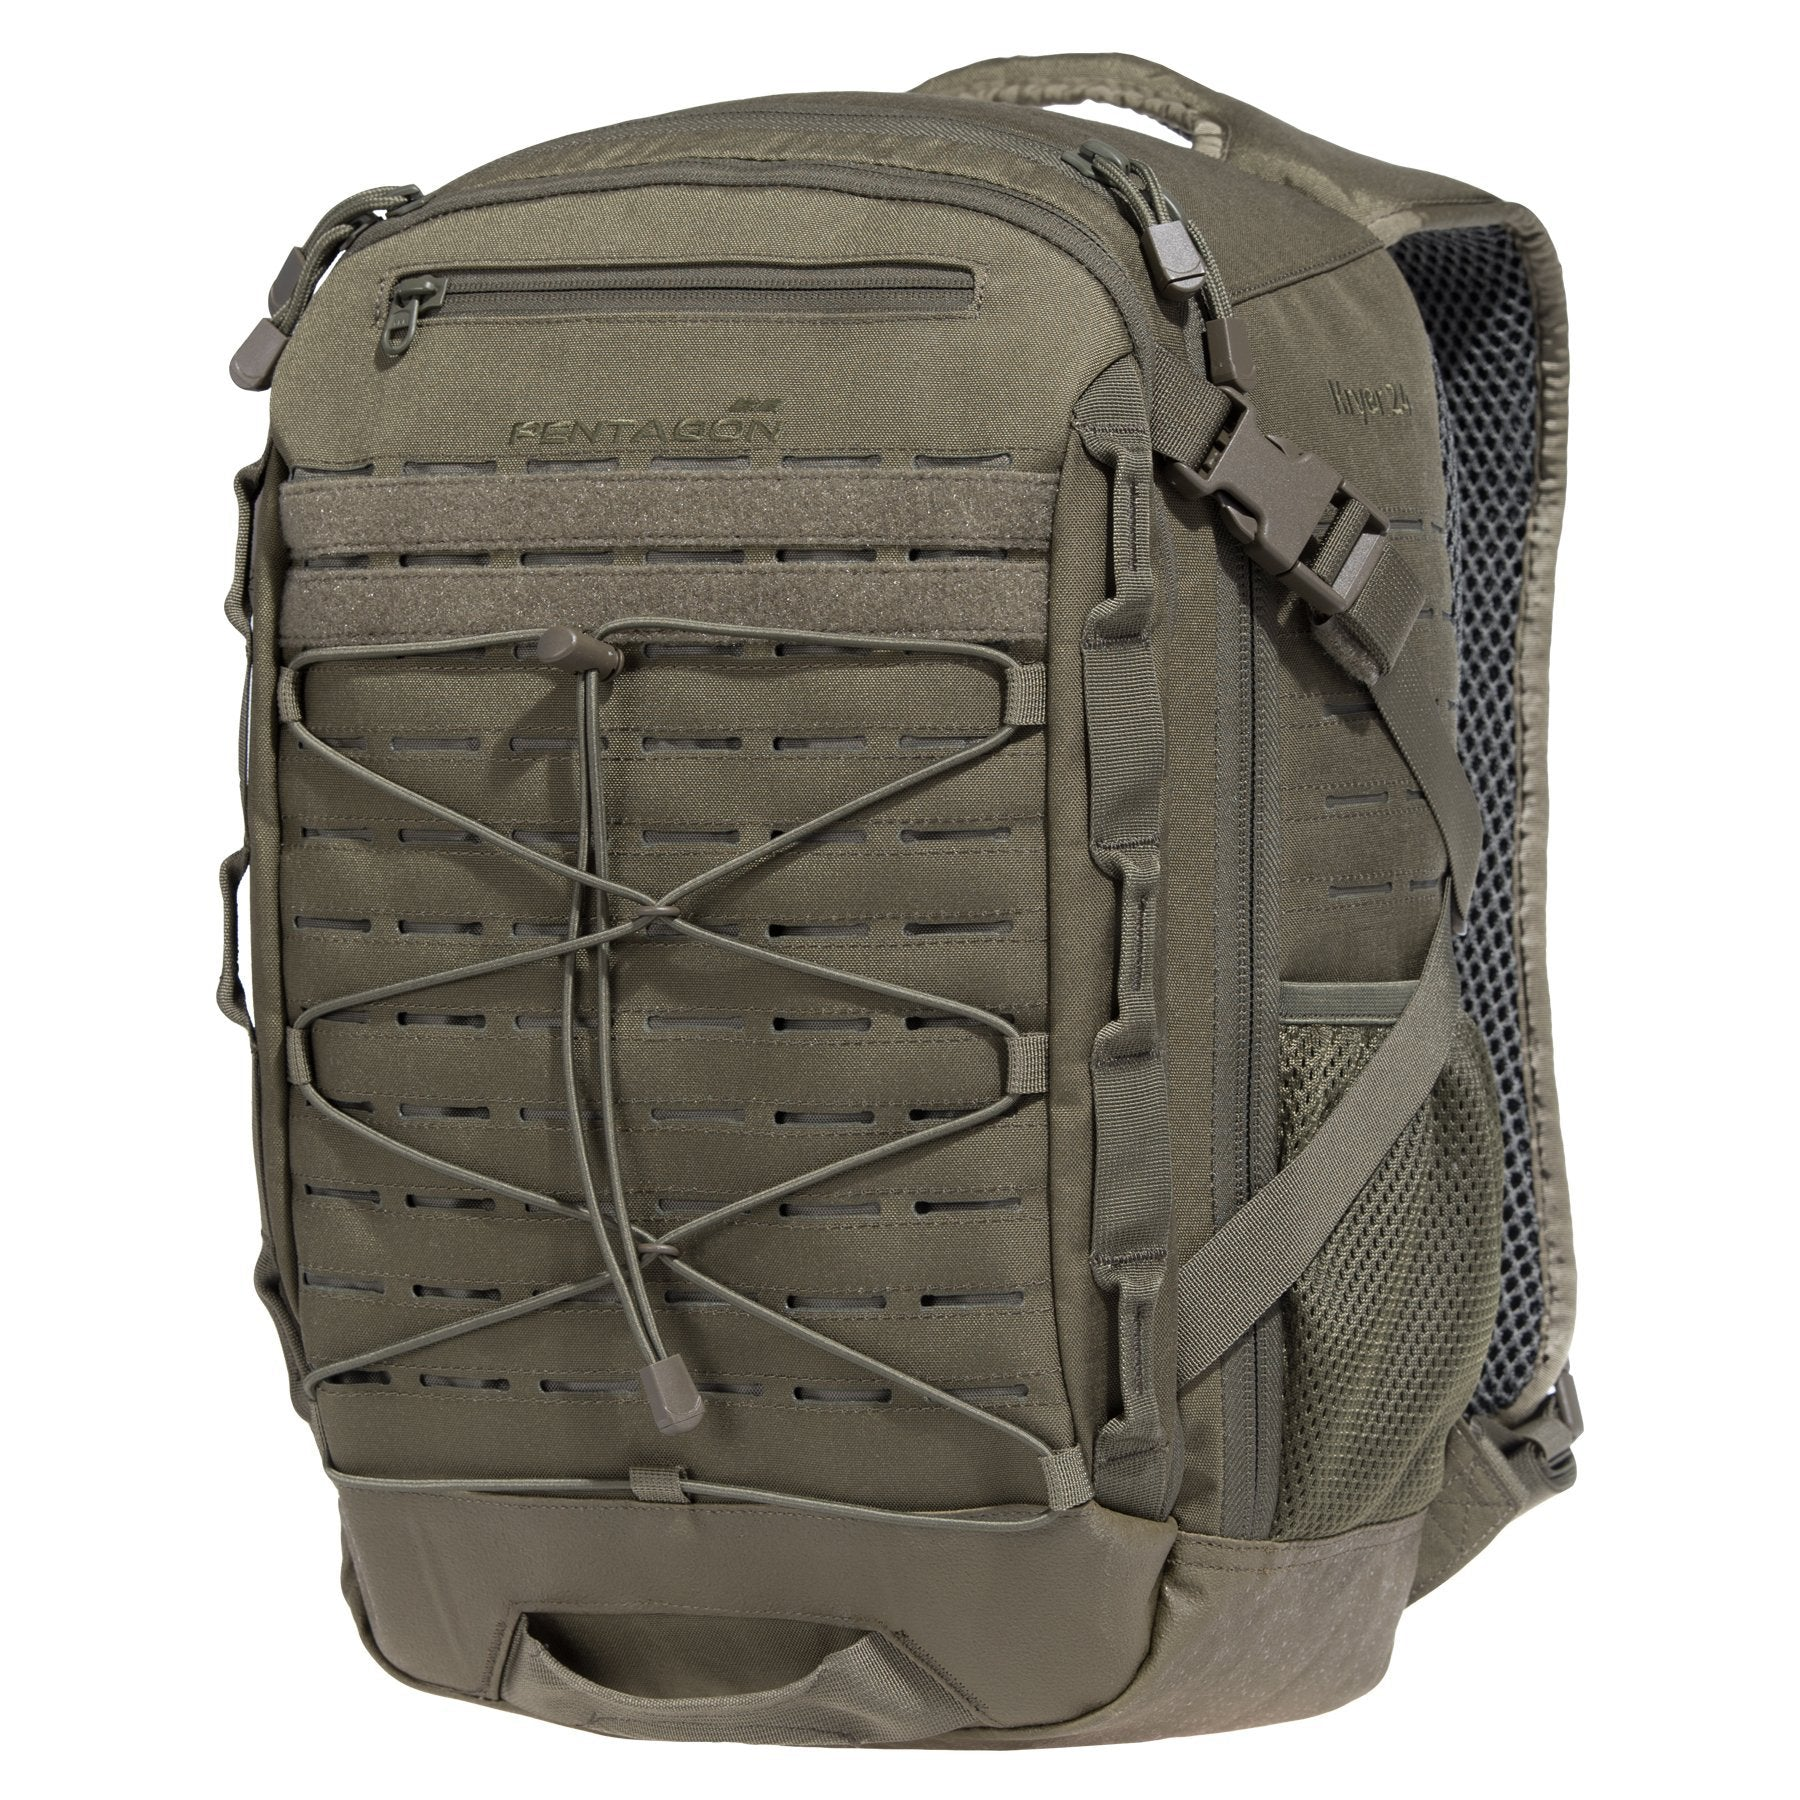 Pentagon Kryer Backpack 21L